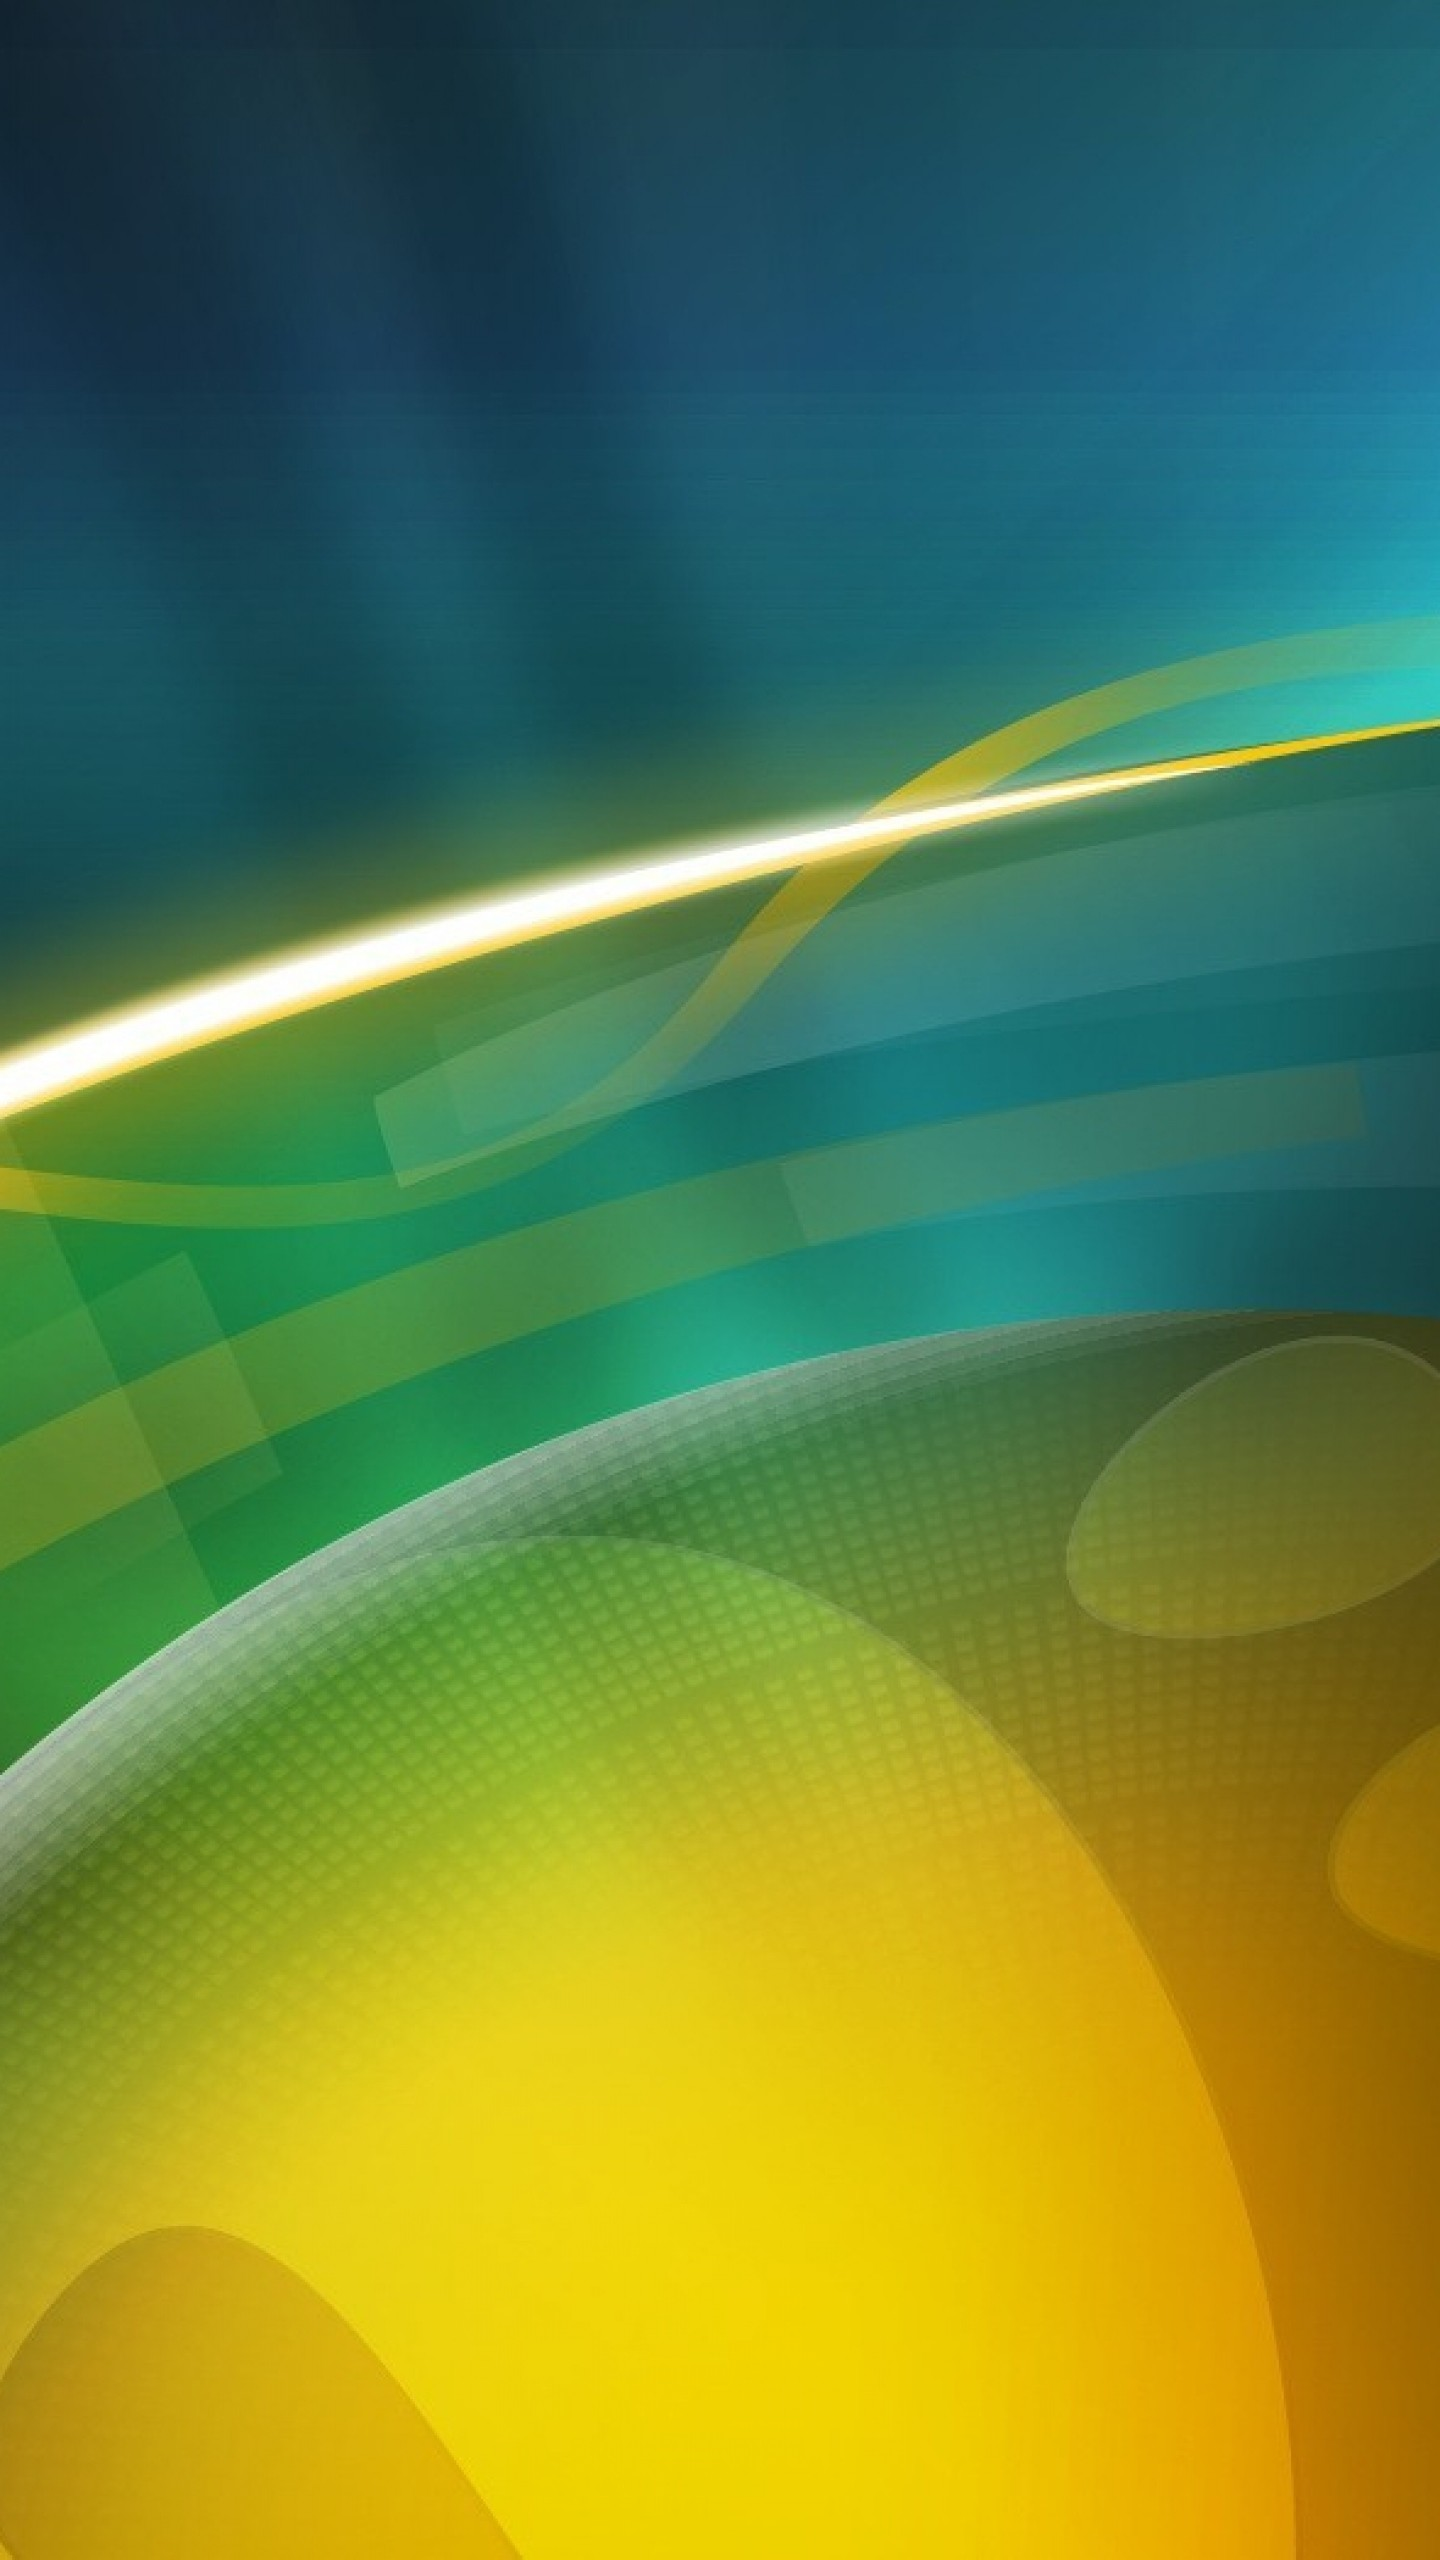 1440x2560  Wallpaper ball, circle, yellow, blue, green